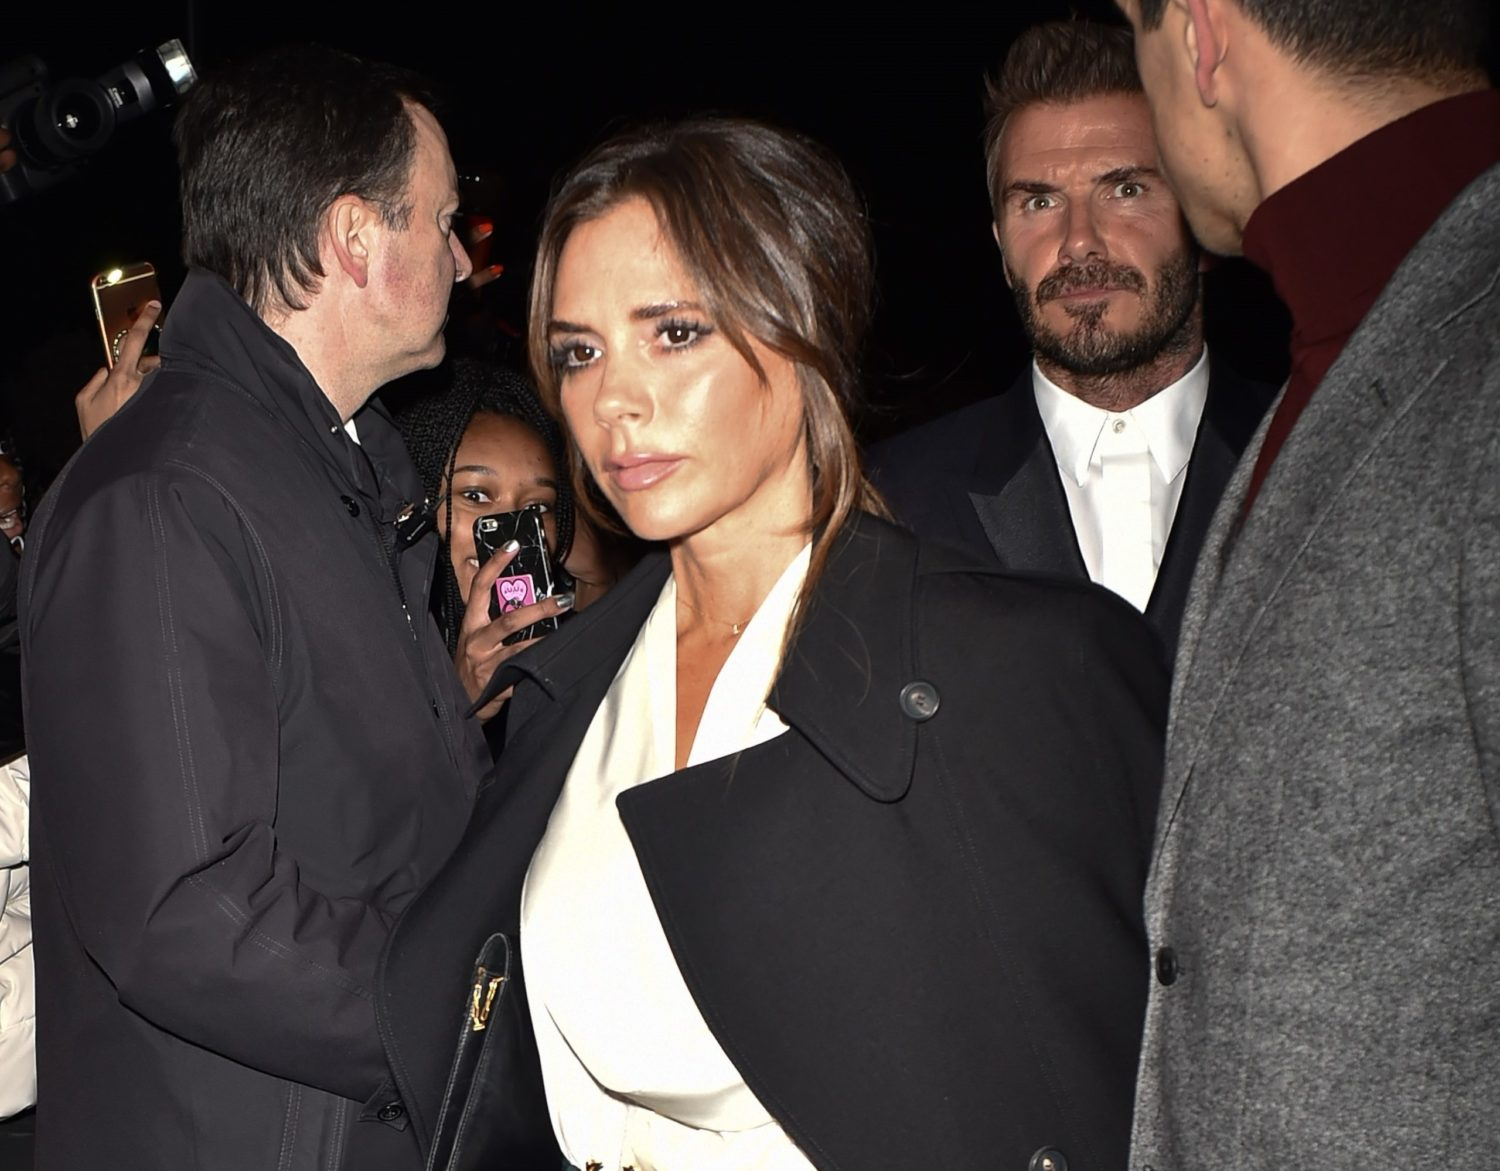 Victoria Beckham made £1 million NOT to join the Spice Girls reunion